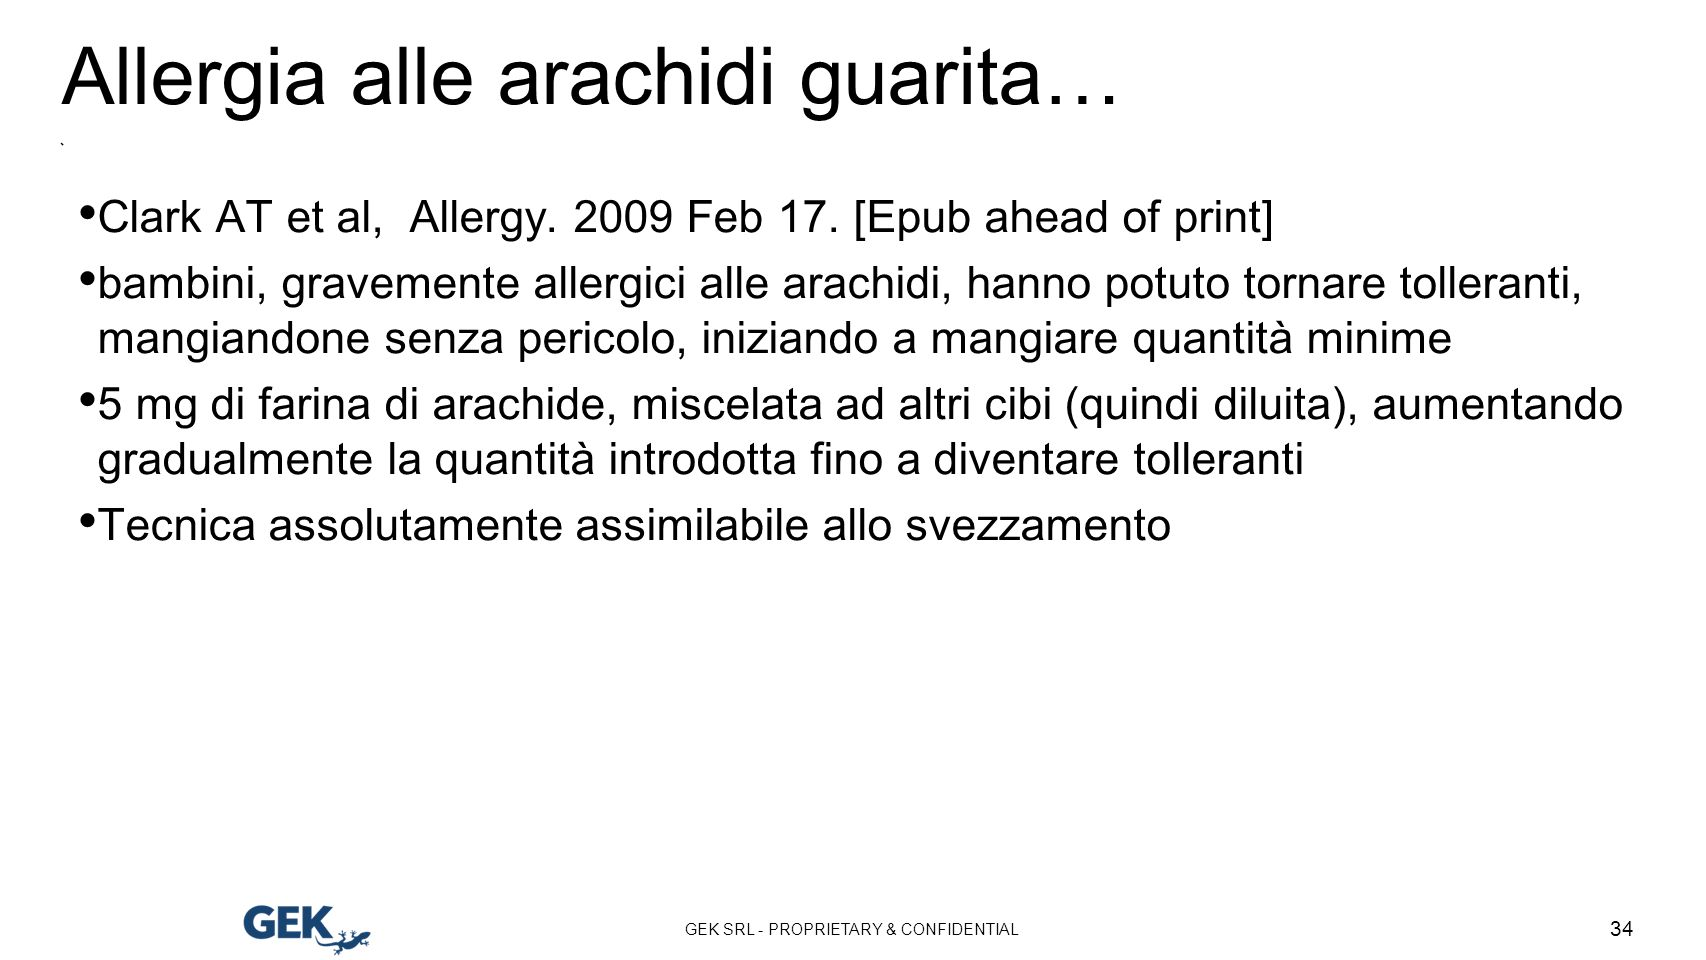 Allergia alle arachidi guarita…